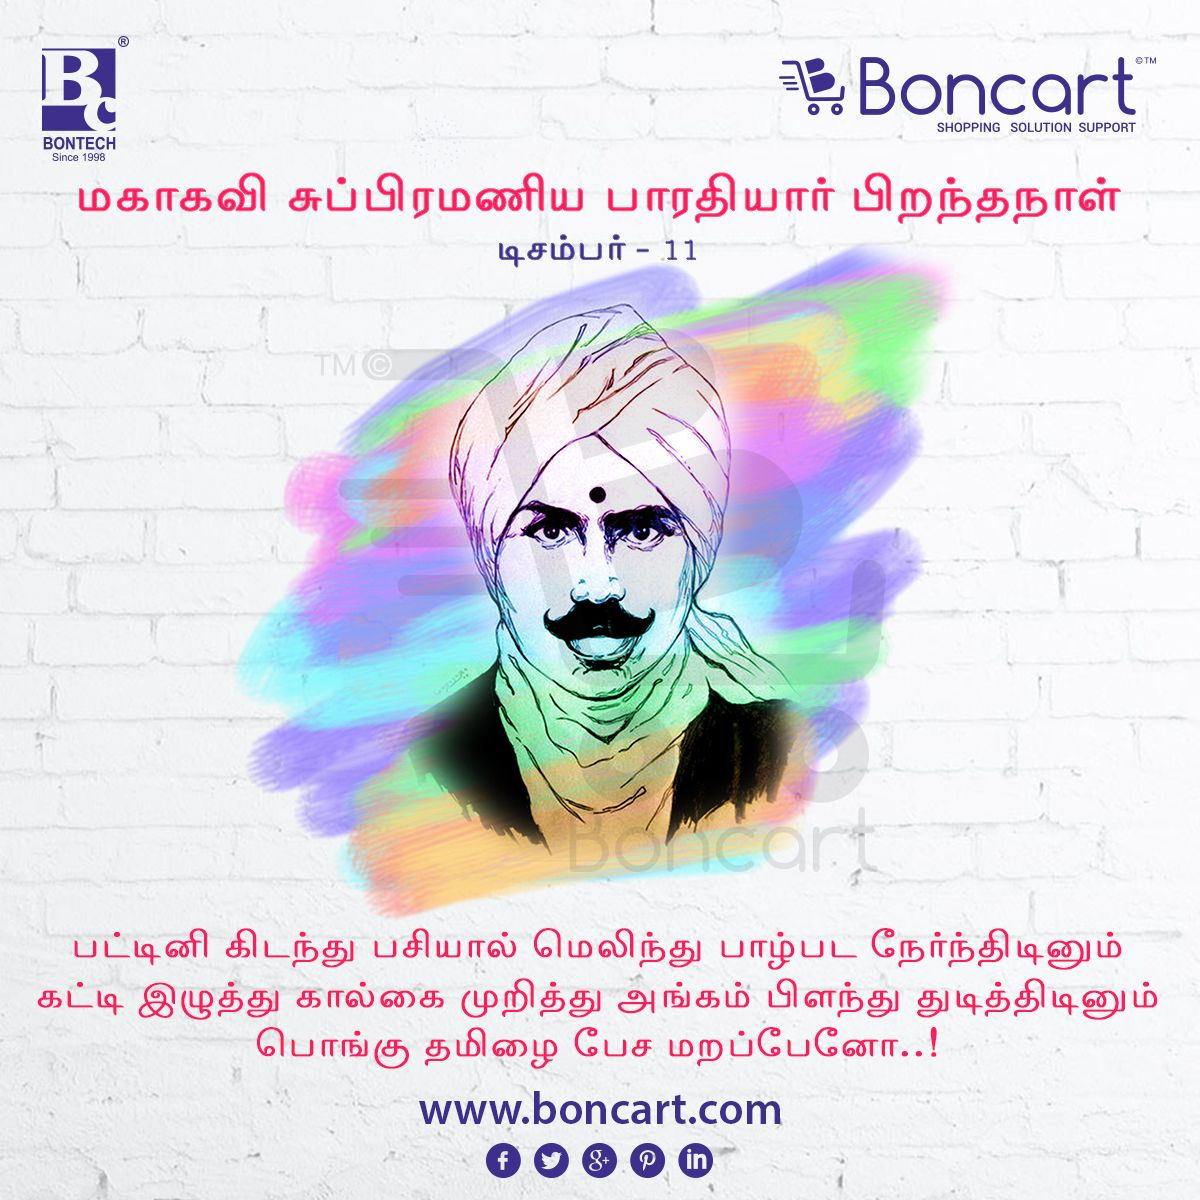 Subramaniya bharathiyar Birthday December 11 Photo album